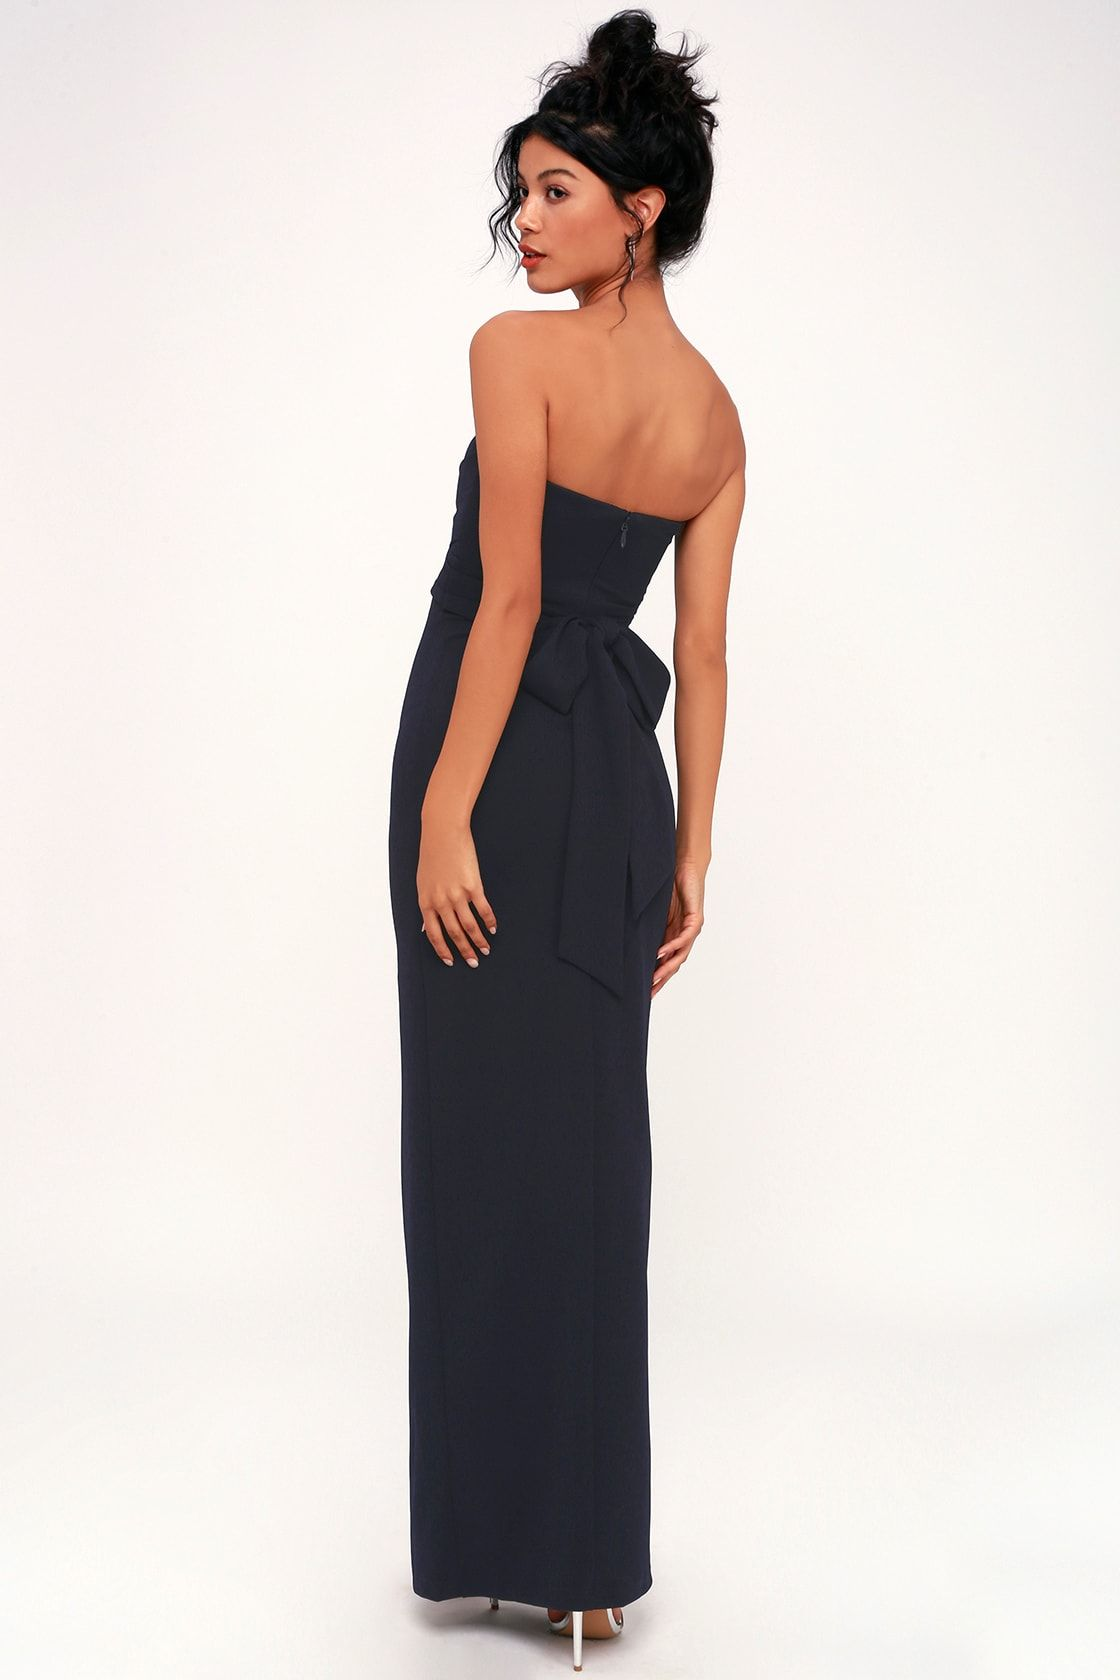 30017b739402 Lulus | Own the Night Navy Blue Strapless Maxi Dress | Size Large in ...